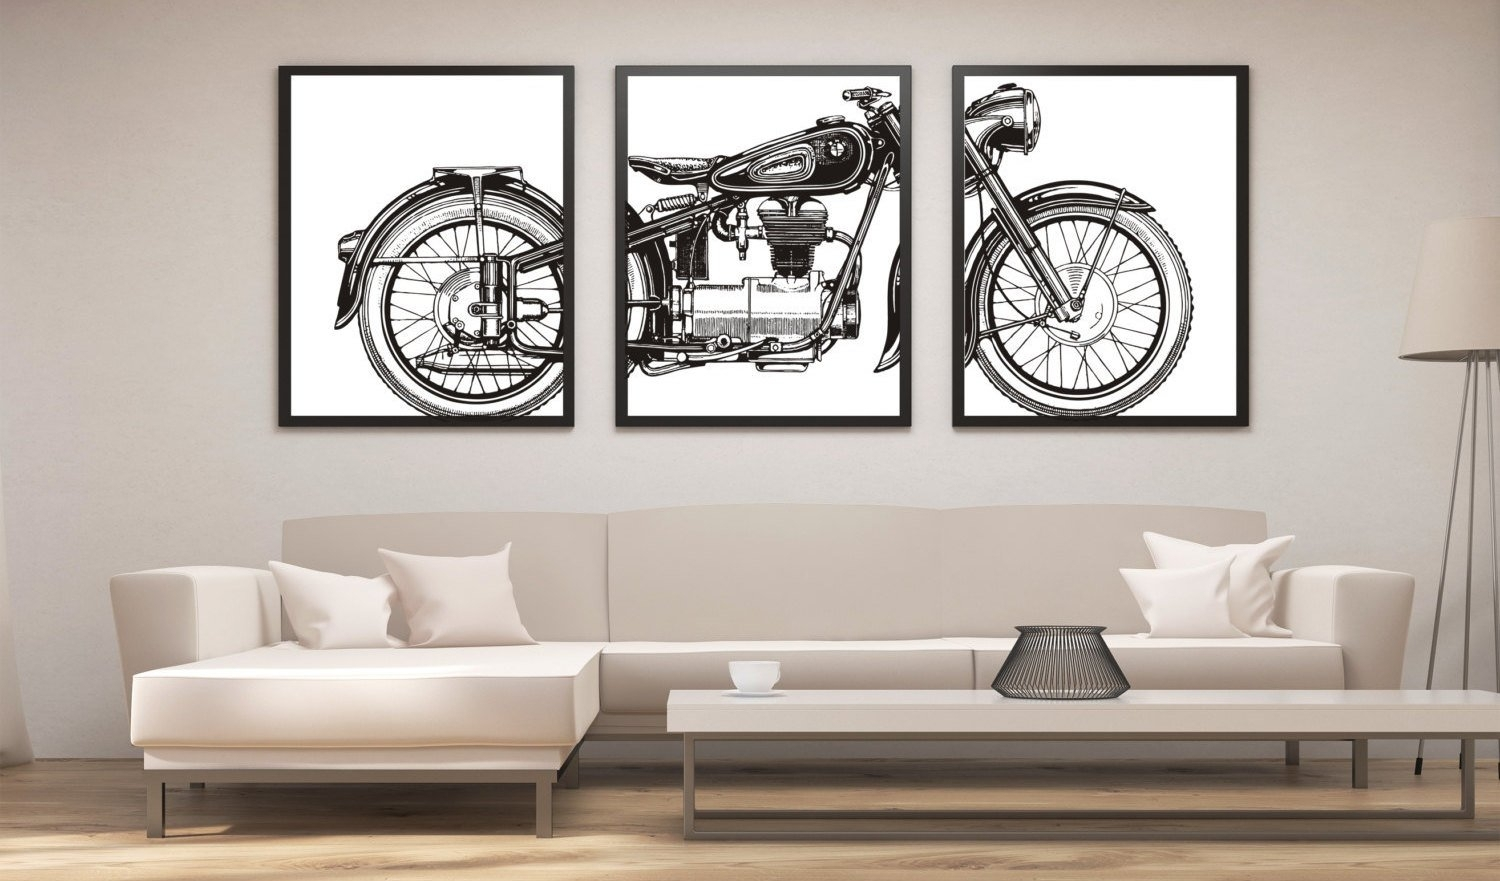 Motorcycle Print Set, Motorcycle Panel Art, Panel Wall Art Pertaining To Latest Motorcycle Wall Art (View 15 of 20)